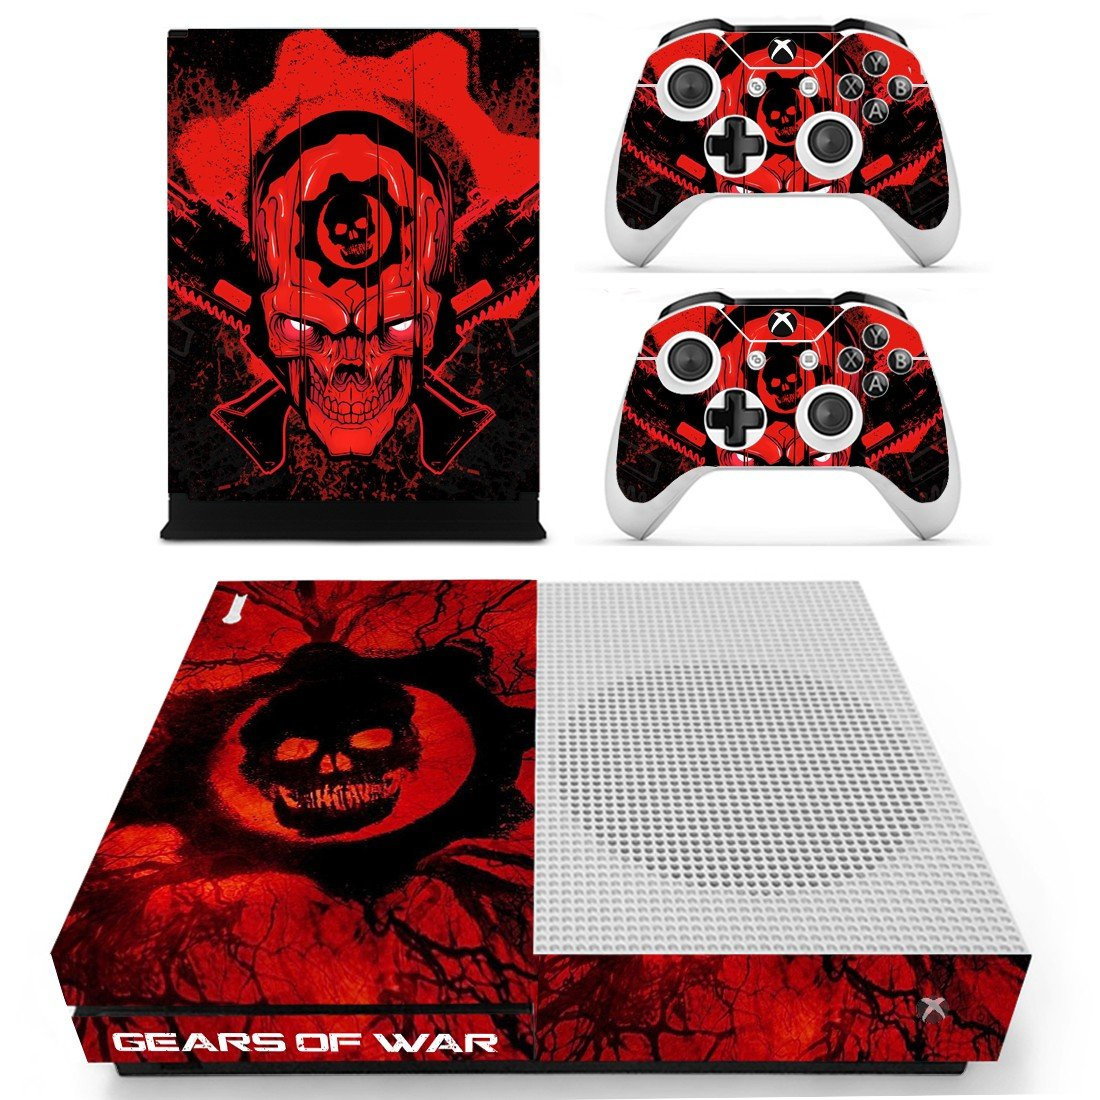 Gears of War decal skin for Xbox One S console and controllers